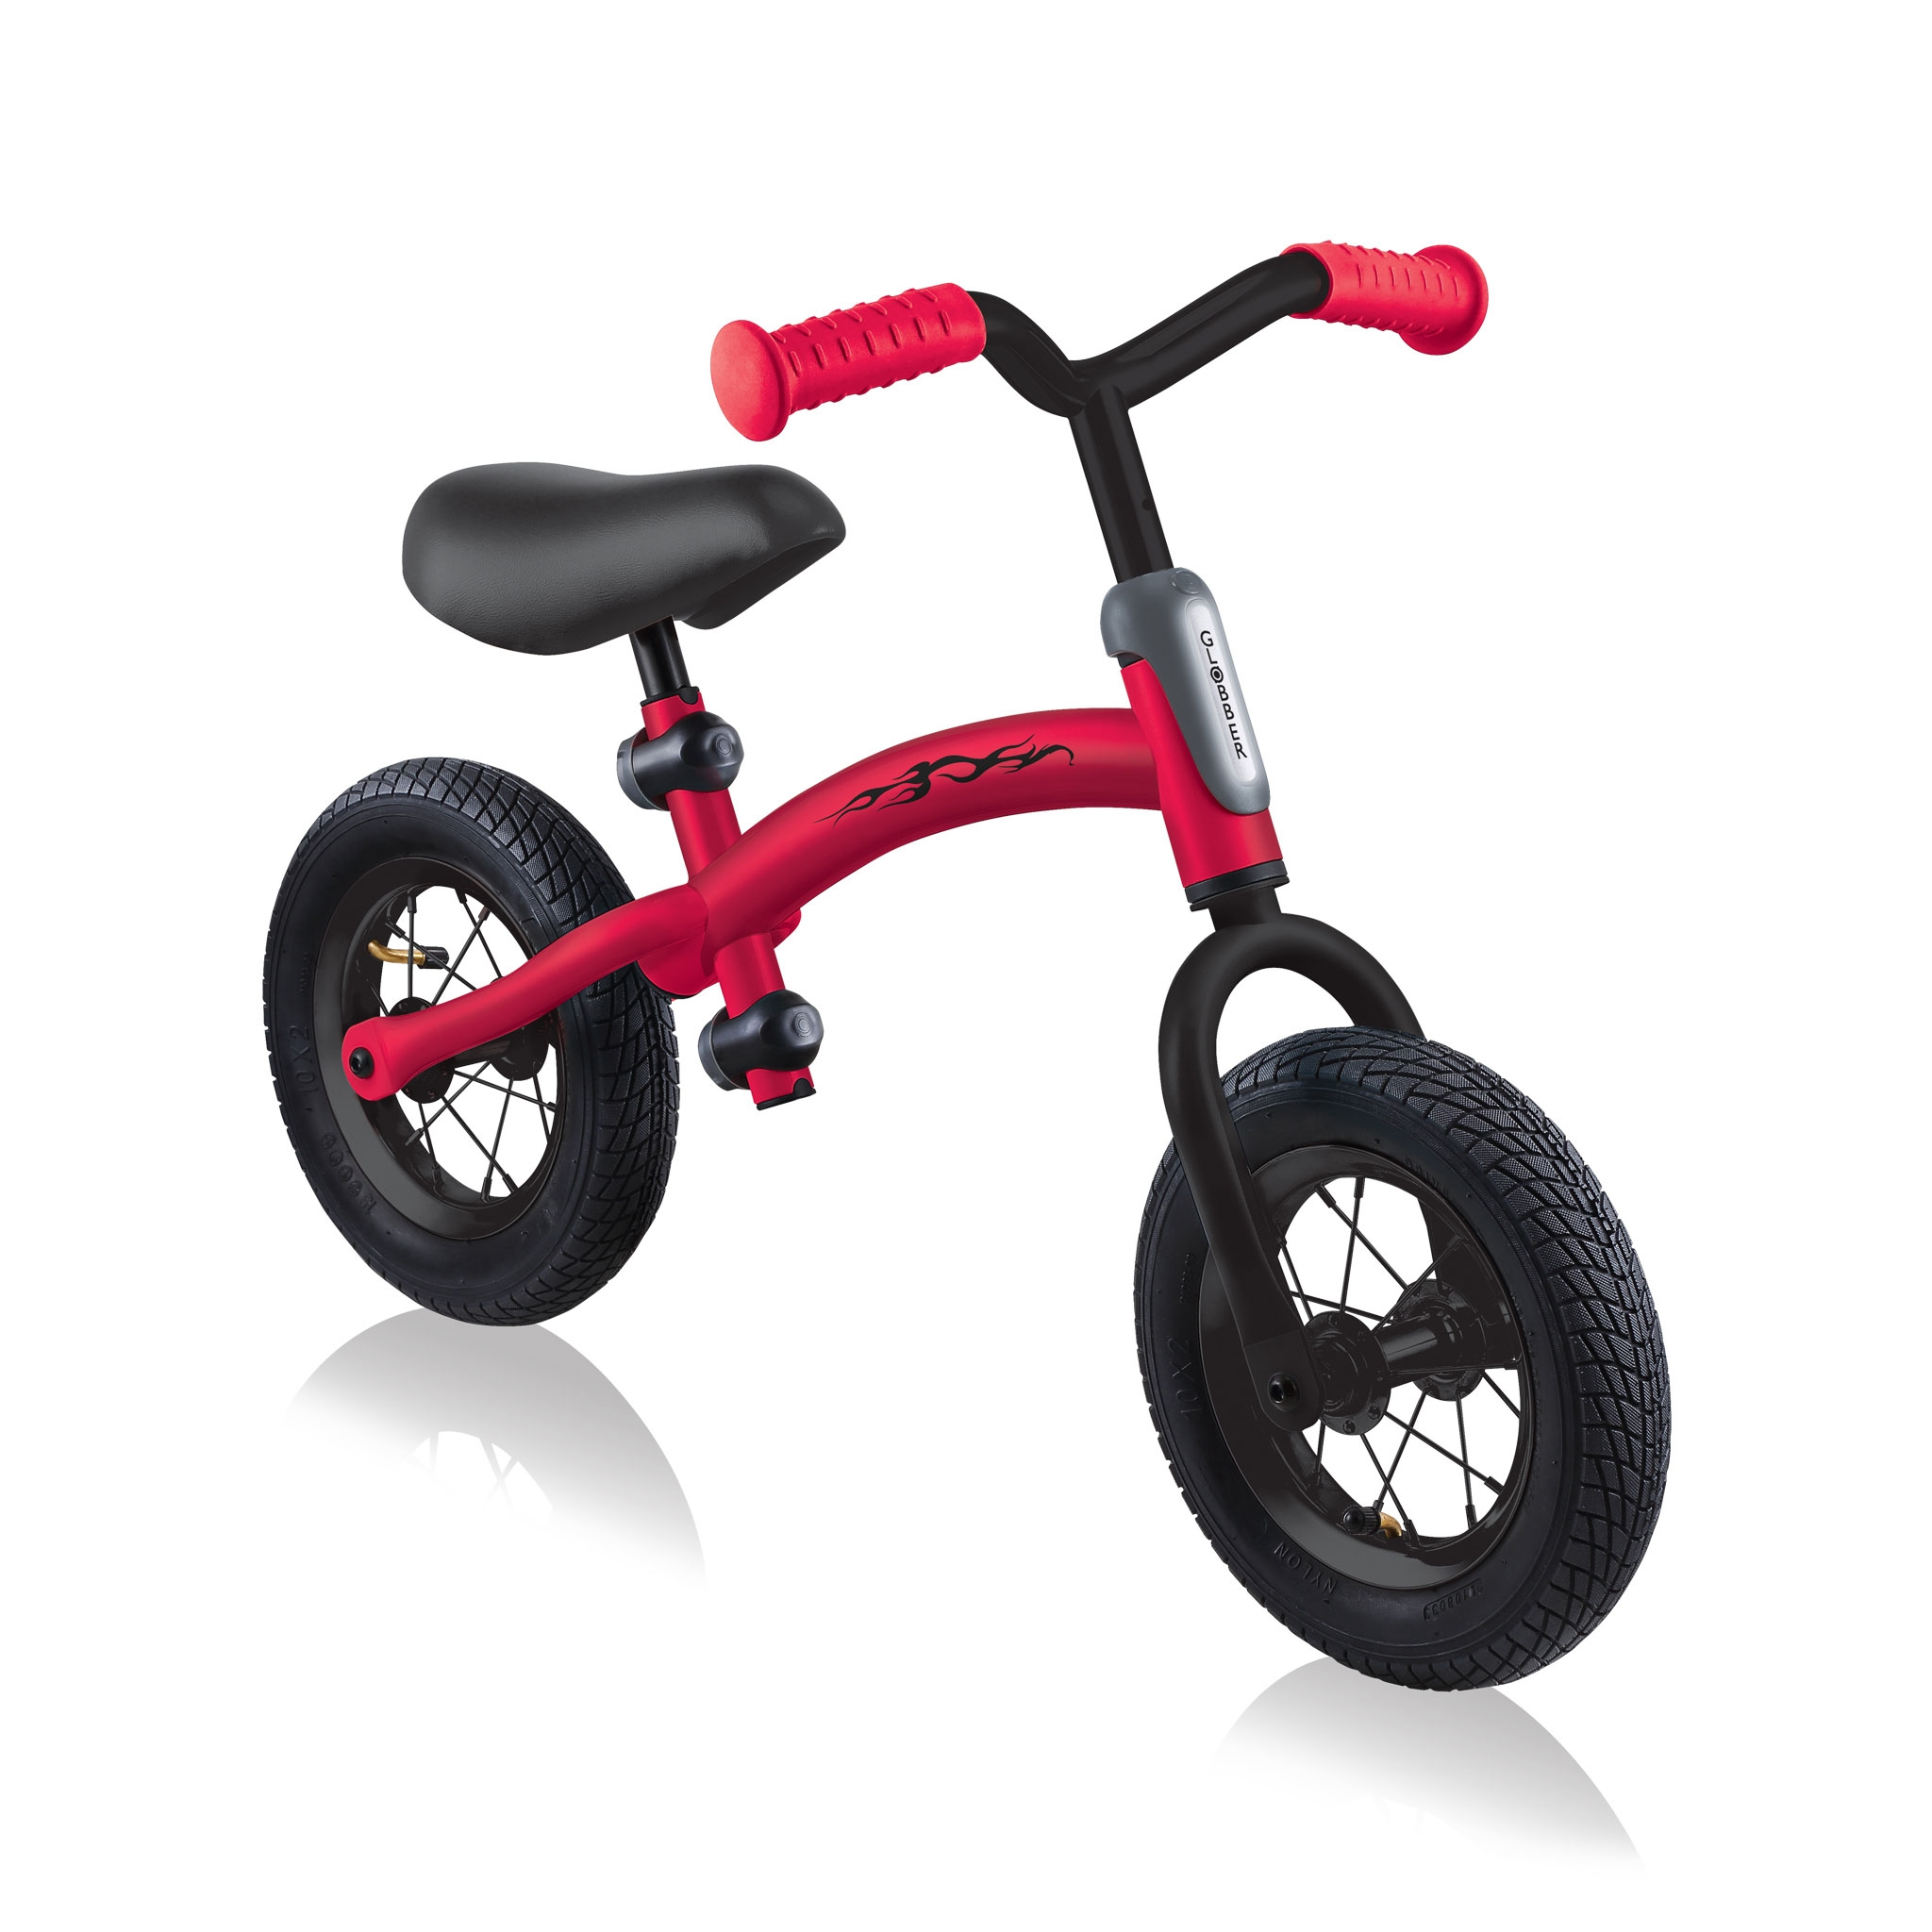 GO-BIKE-AIR-best-toddler-balance-bike-for-kids-aged-3-to-6_red 1